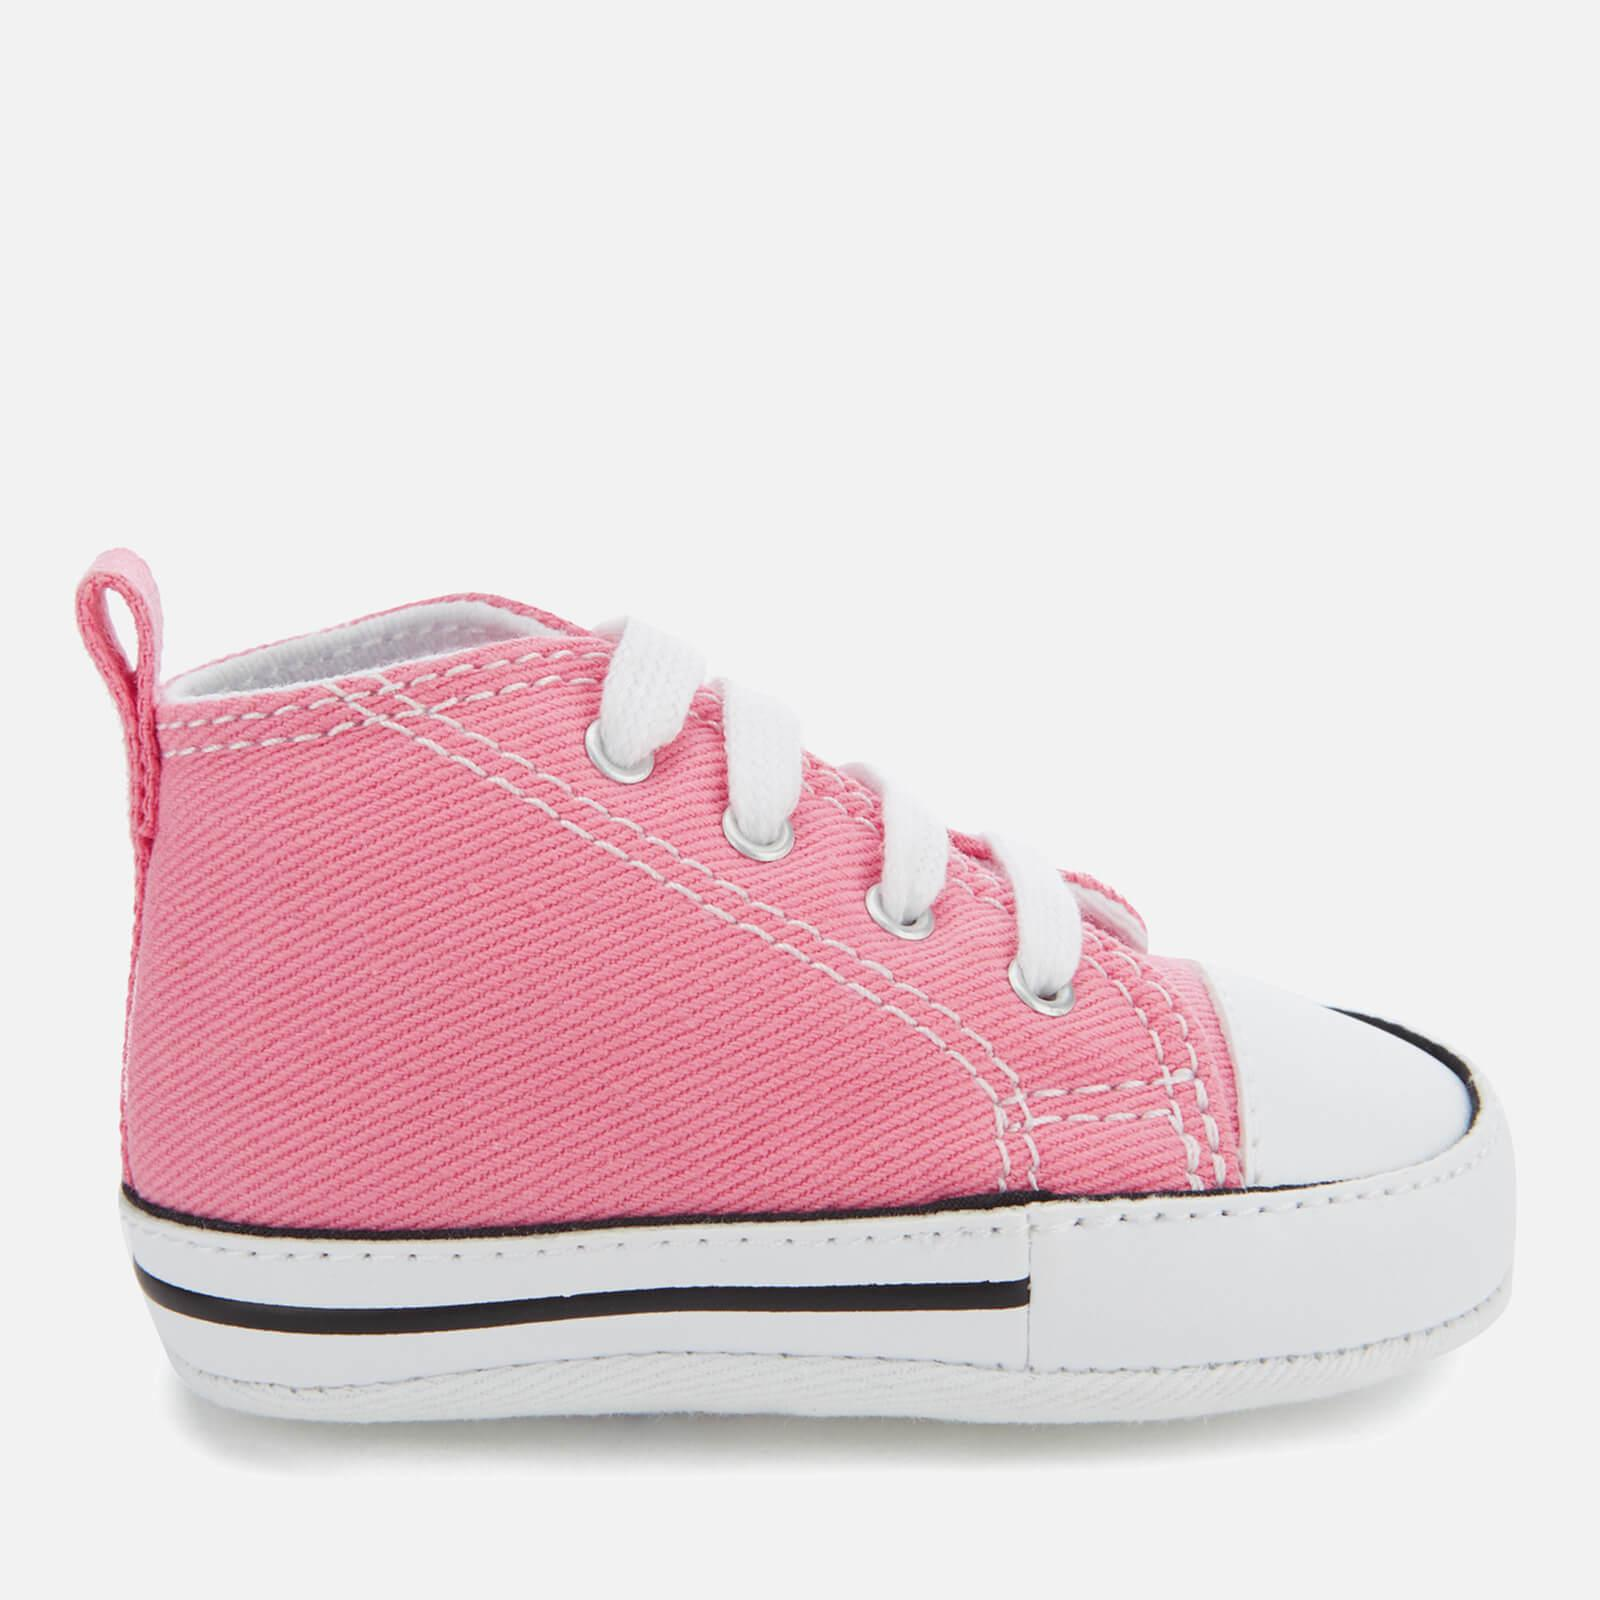 1c12c9f3790ed9 Lyst - Converse Babies Chuck Taylor First Star Hi-top Trainers in Pink